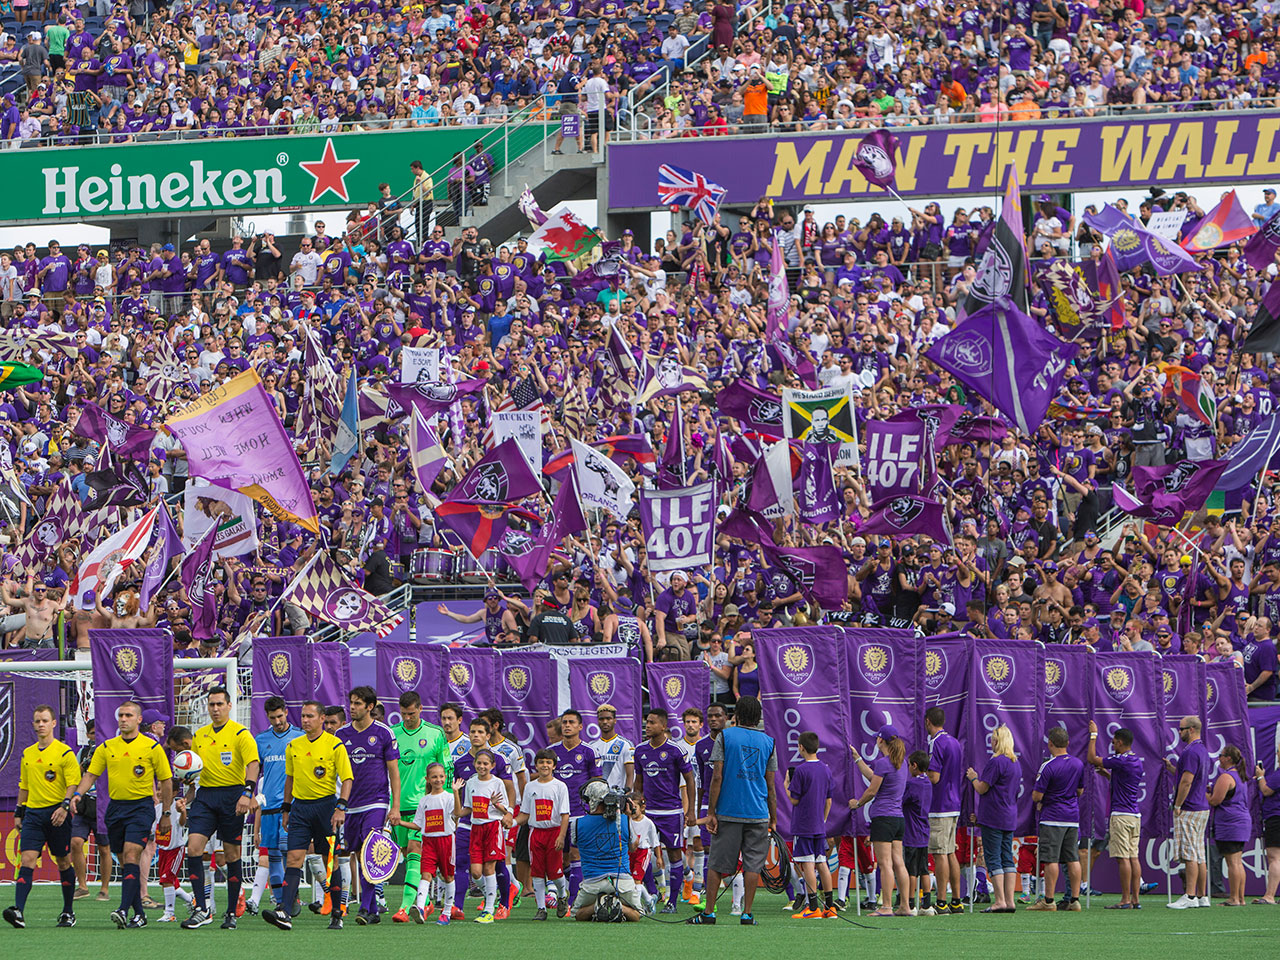 Orlando City SC Orlando City Soccer Club Citrus Bowl Orlando MLS